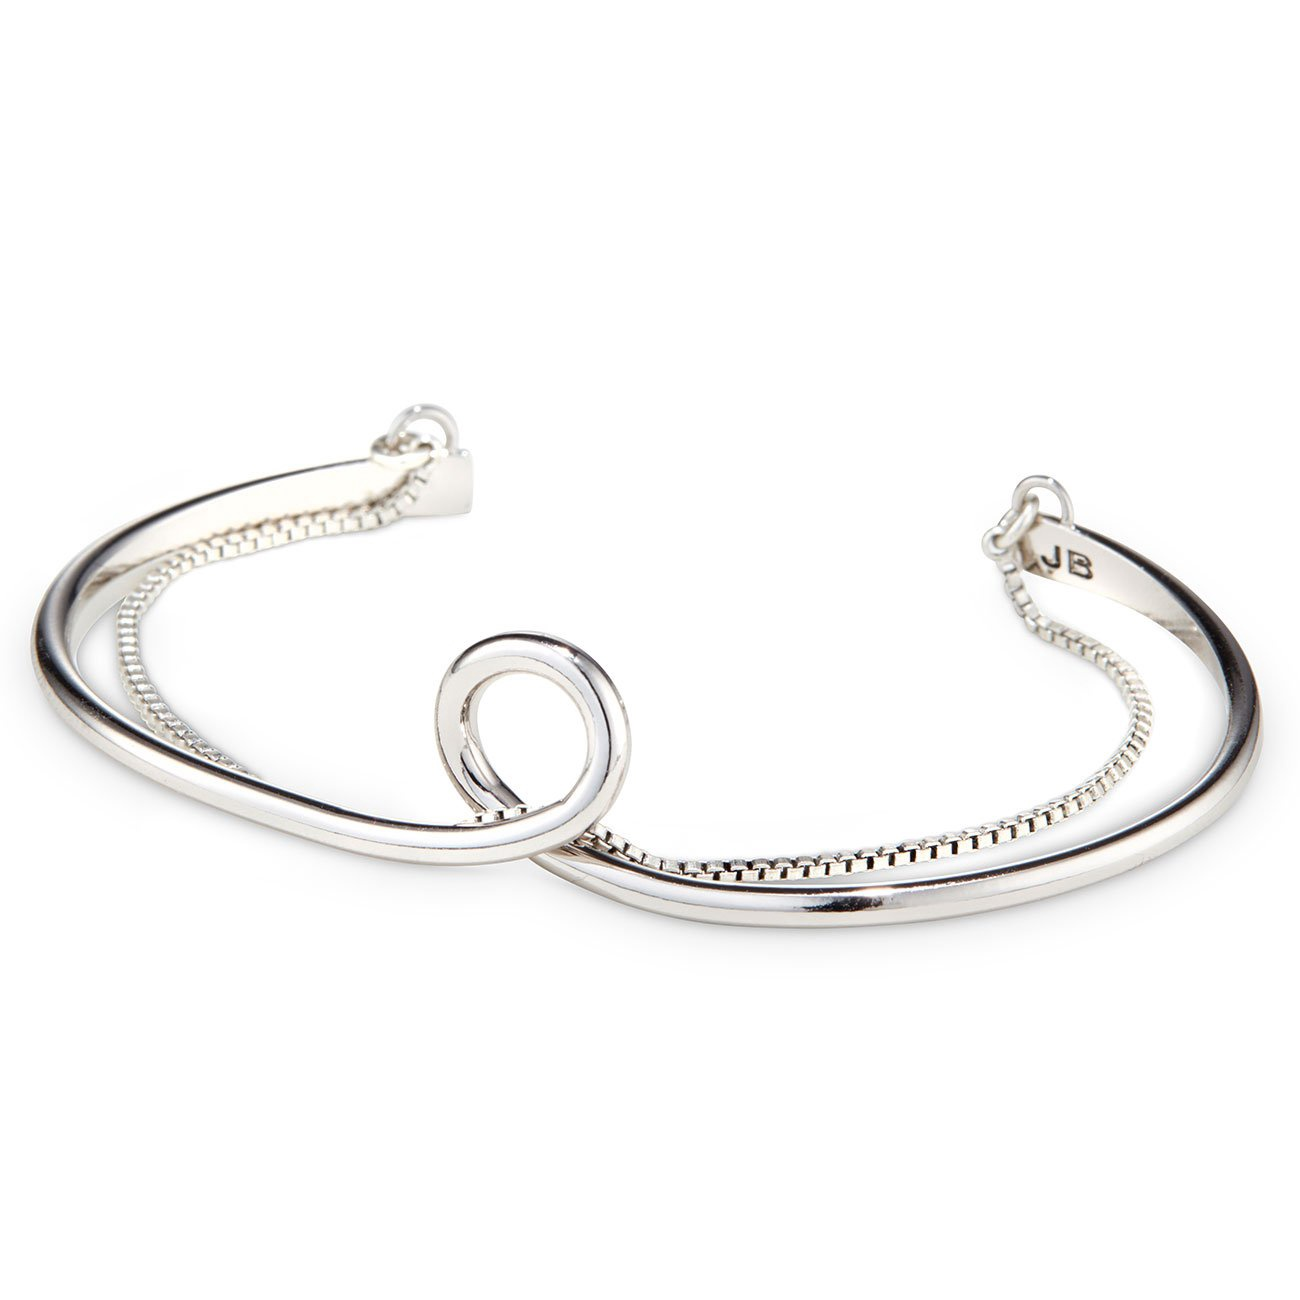 JENNYBIRD - THE LOOP CUFF IN RHODIUM/SILVER